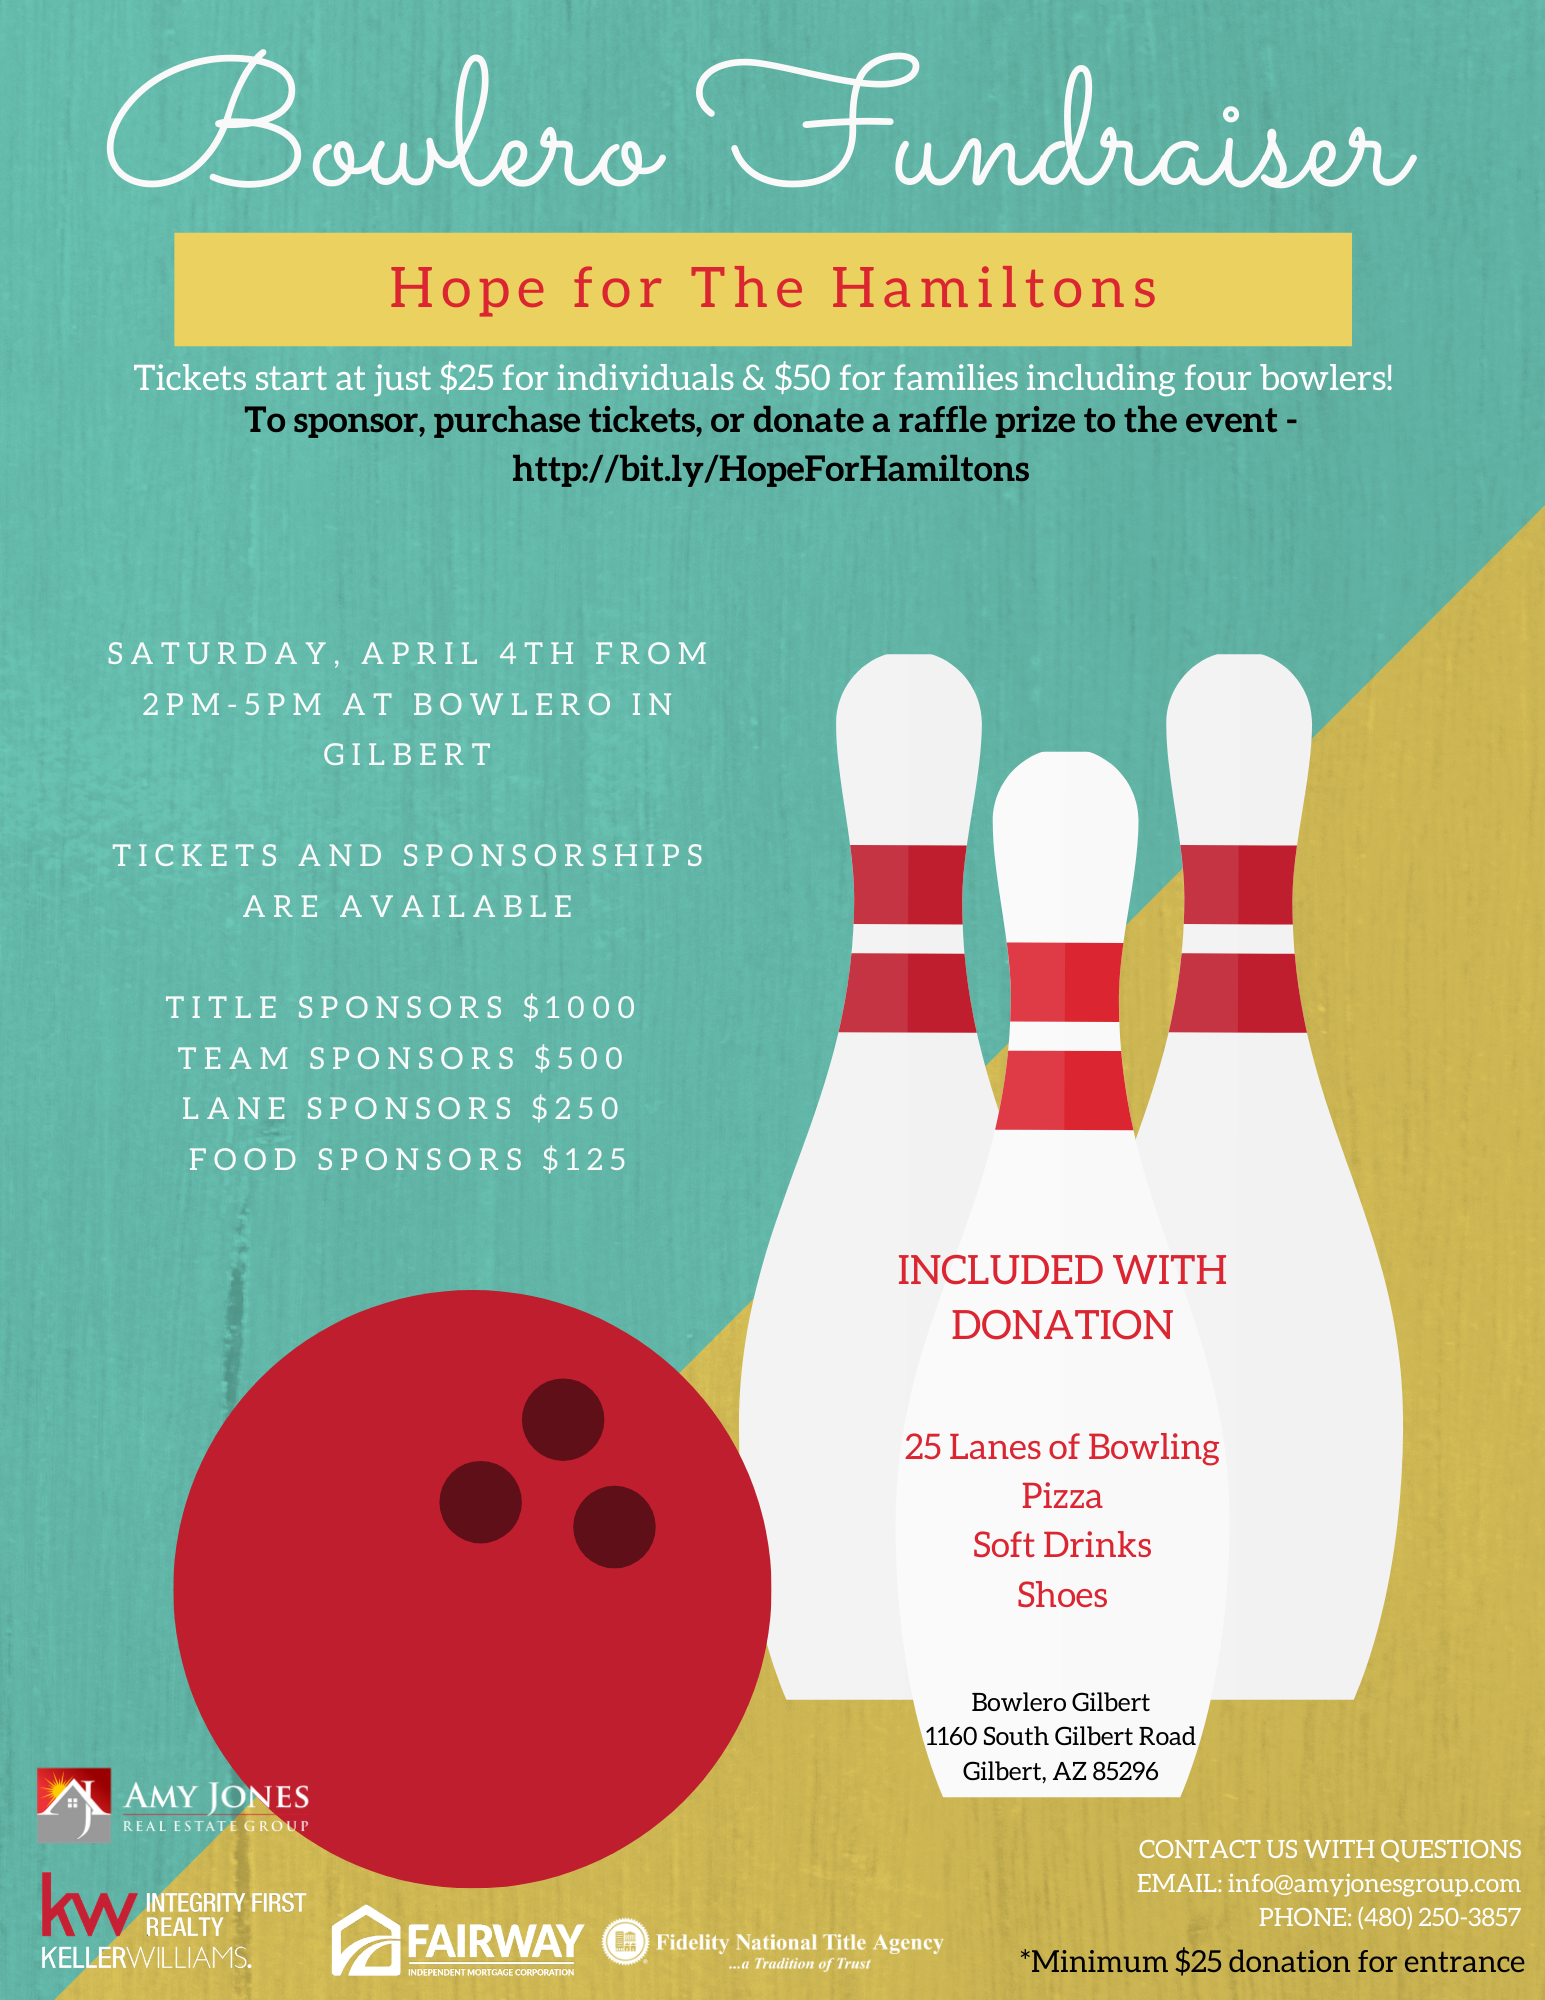 Hope for The Hamiltons - Bowlero Fundraiser